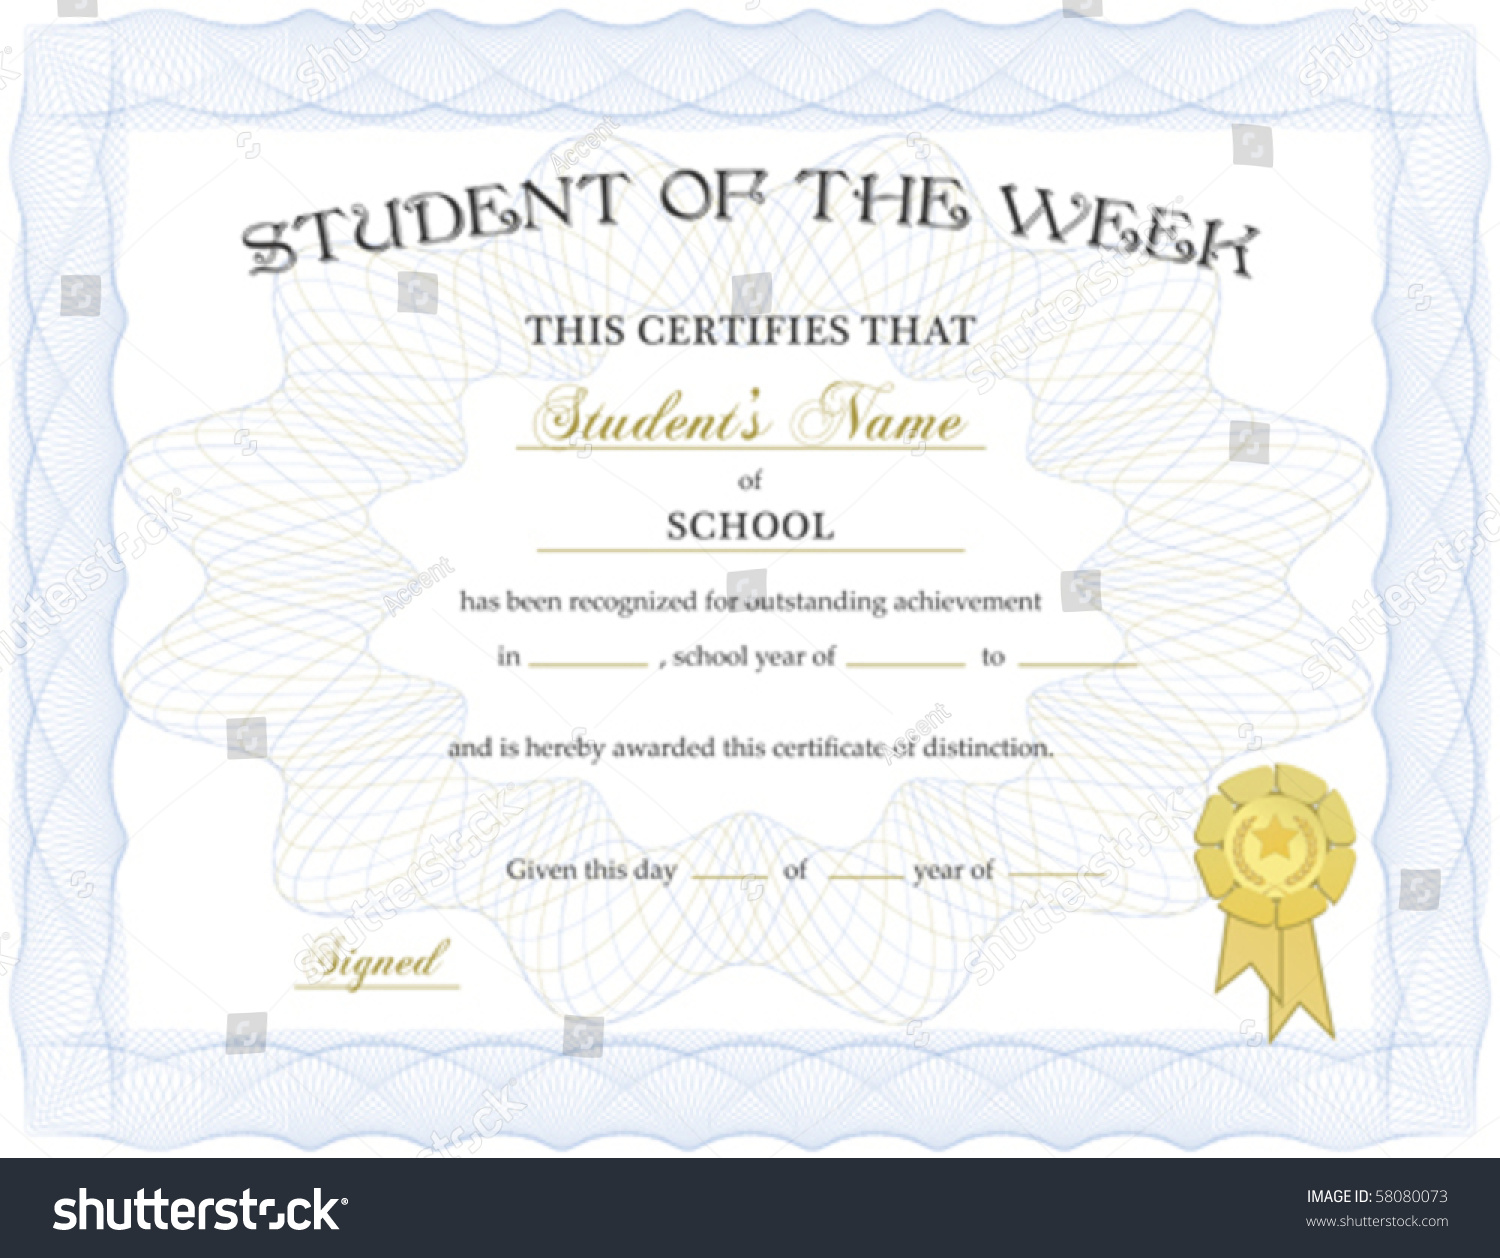 Student week certificate vector stock vector 58080073 shutterstock student of the week certificate vector xflitez Choice Image